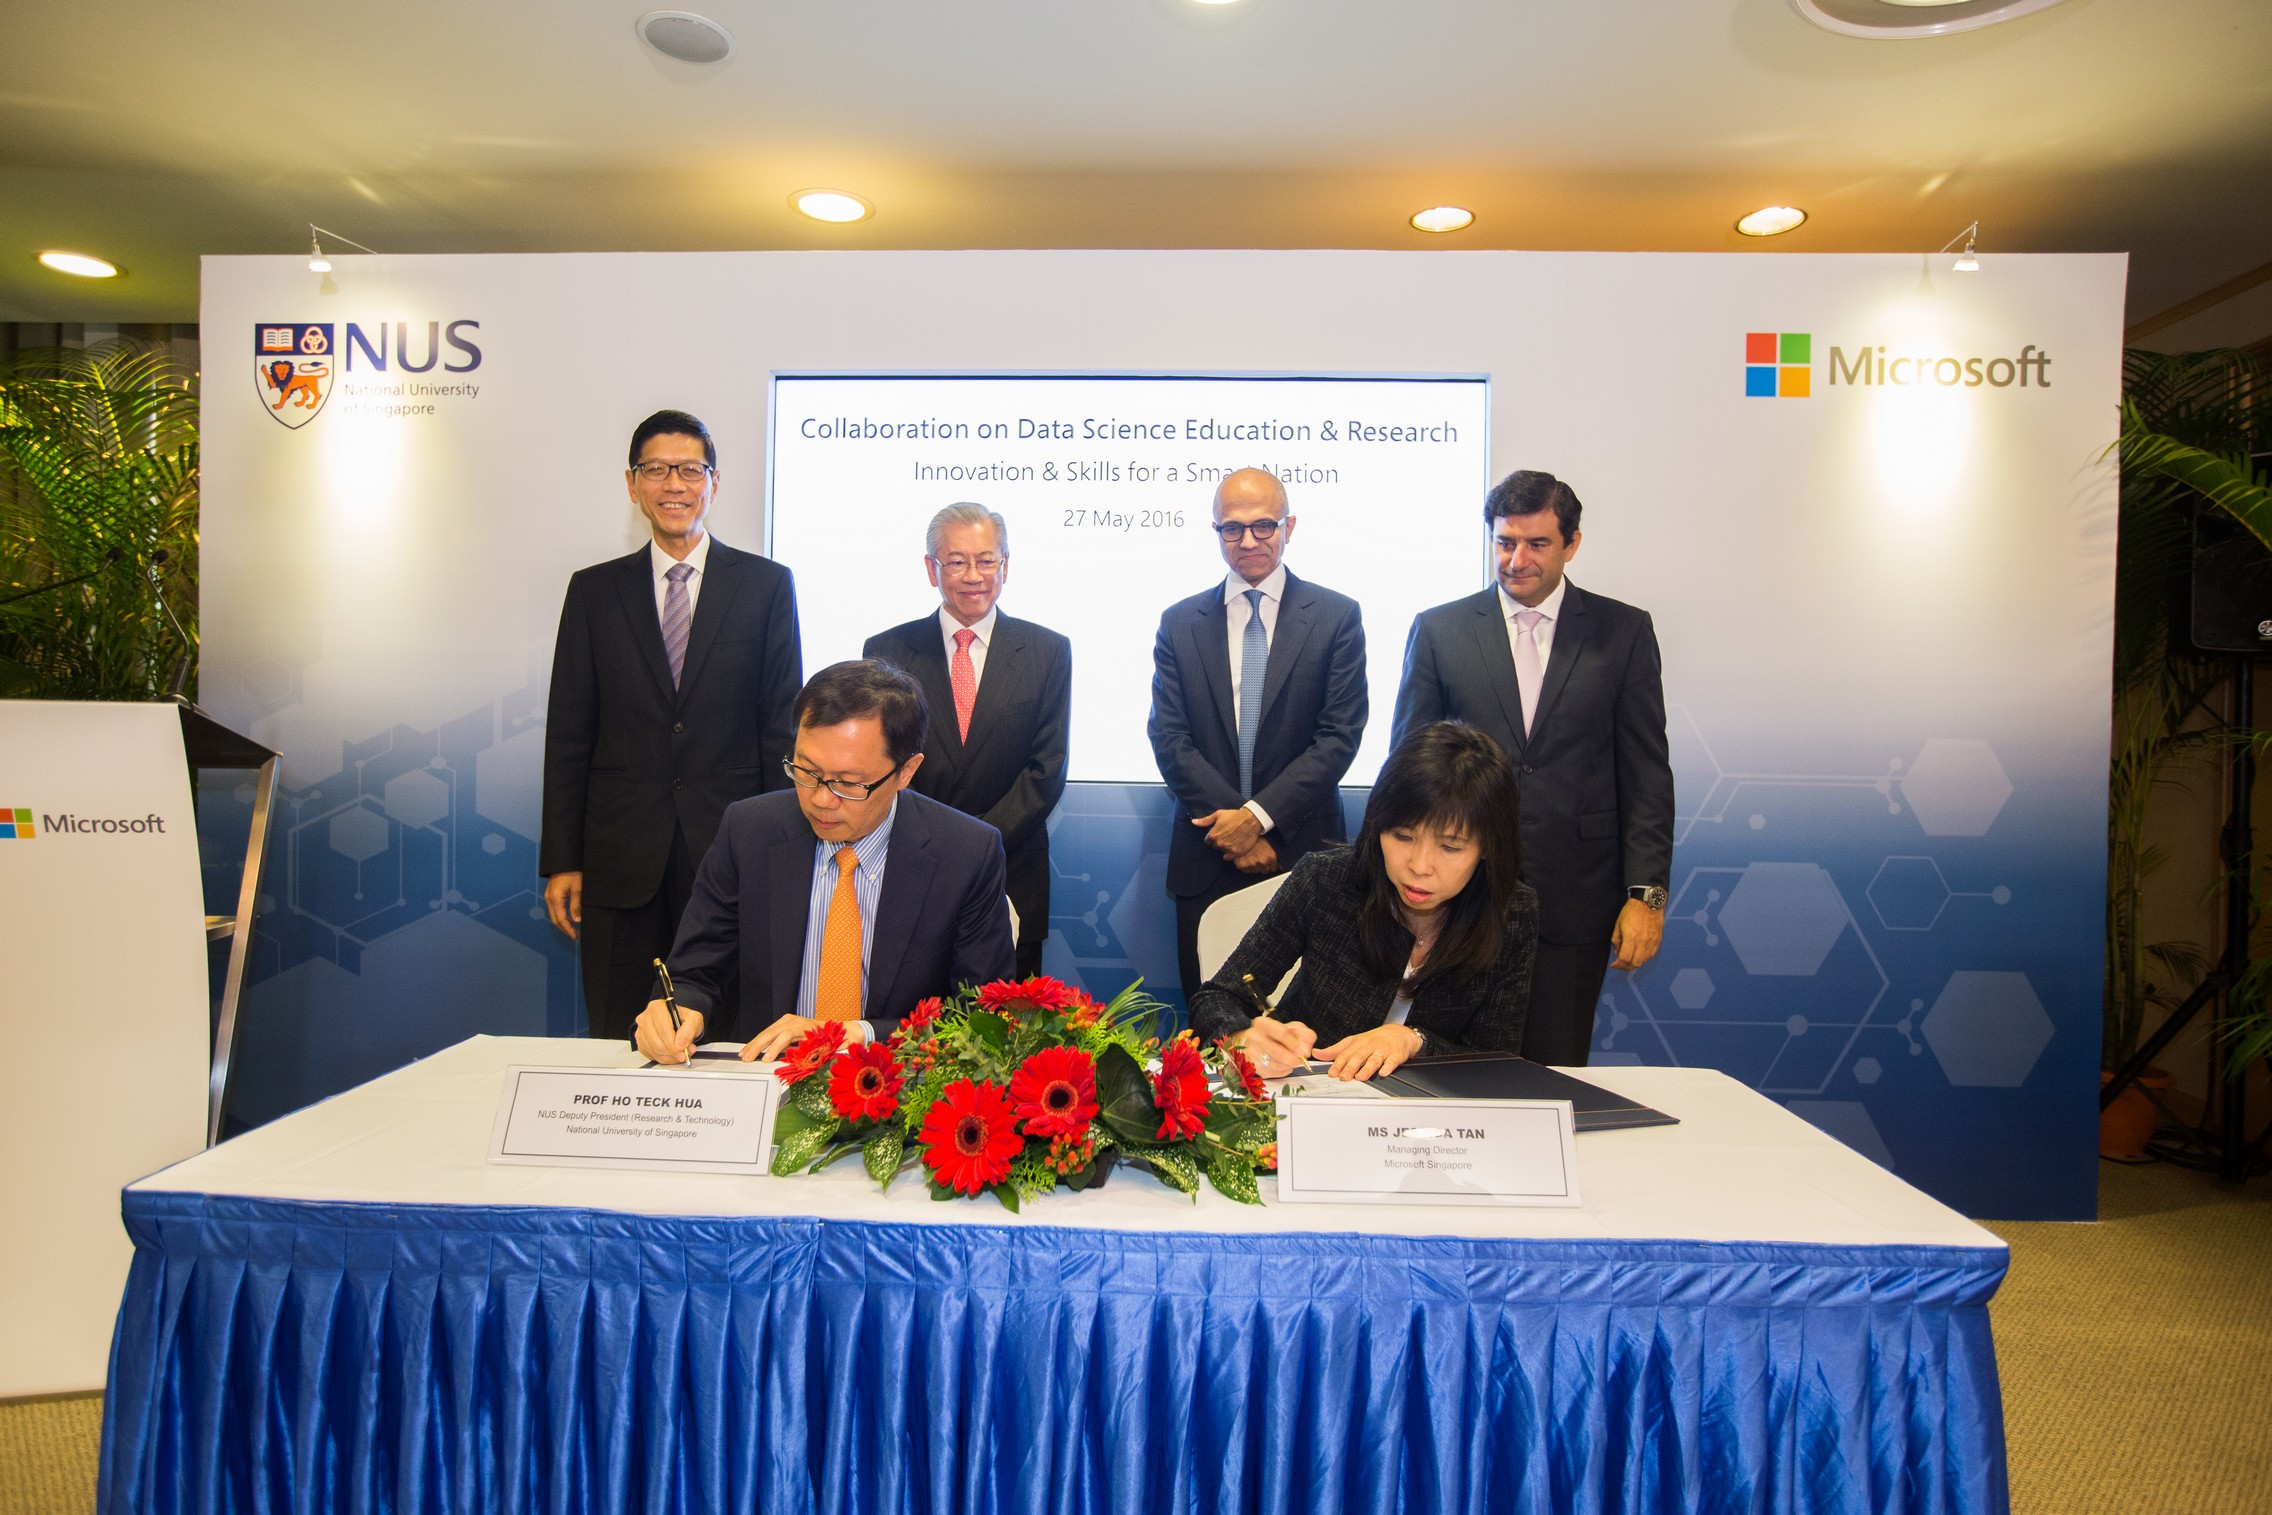 Professor Ho Teck Hua, Deputy President (Research & Technology) of NUS and Jessica Tan, Managing Director of Microsoft Singapore, sign Memorandum of Understanding (MoU) to collaborate on data science and research, witnessed by (from left) Professor Tan Chorh Chuan, President of NUS, Wong Ngit Liong, Chairman of NUS Board of Trustees, Satya Nadella, CEO of Microsoft and Cesar Cernuda, President of Microsoft Asia Pacific.